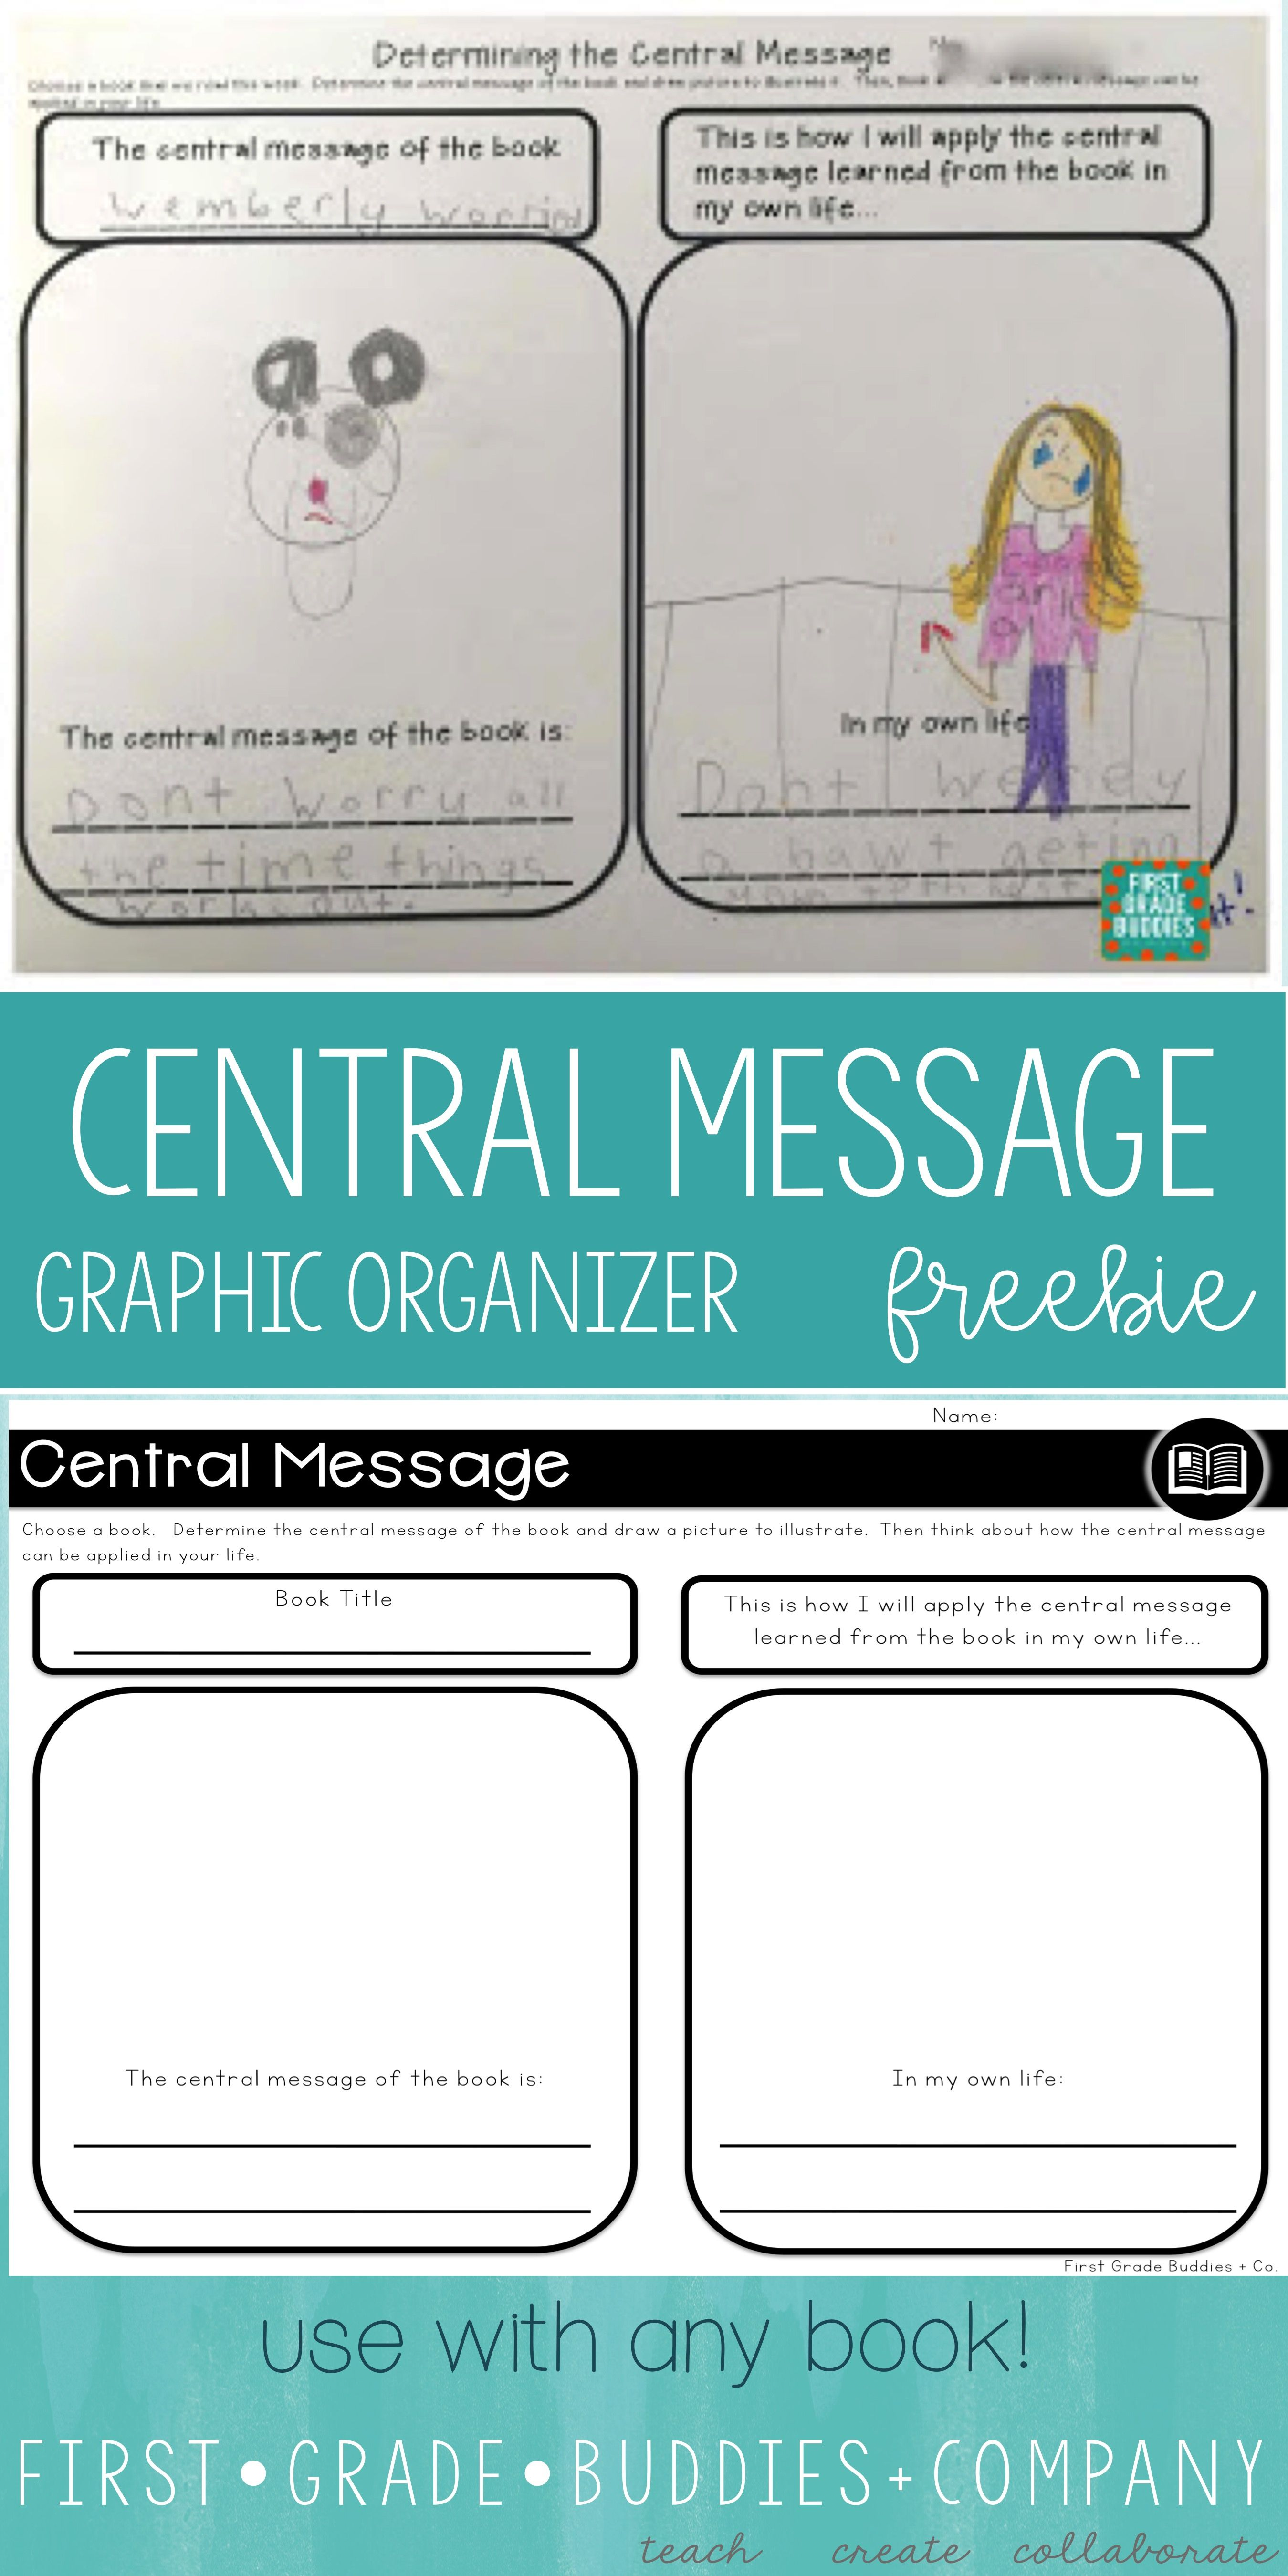 medium resolution of First Grade Buddies: Graphic Organizers for ANY Book! We created one great  big FREE reso…   Reading graphic organizers